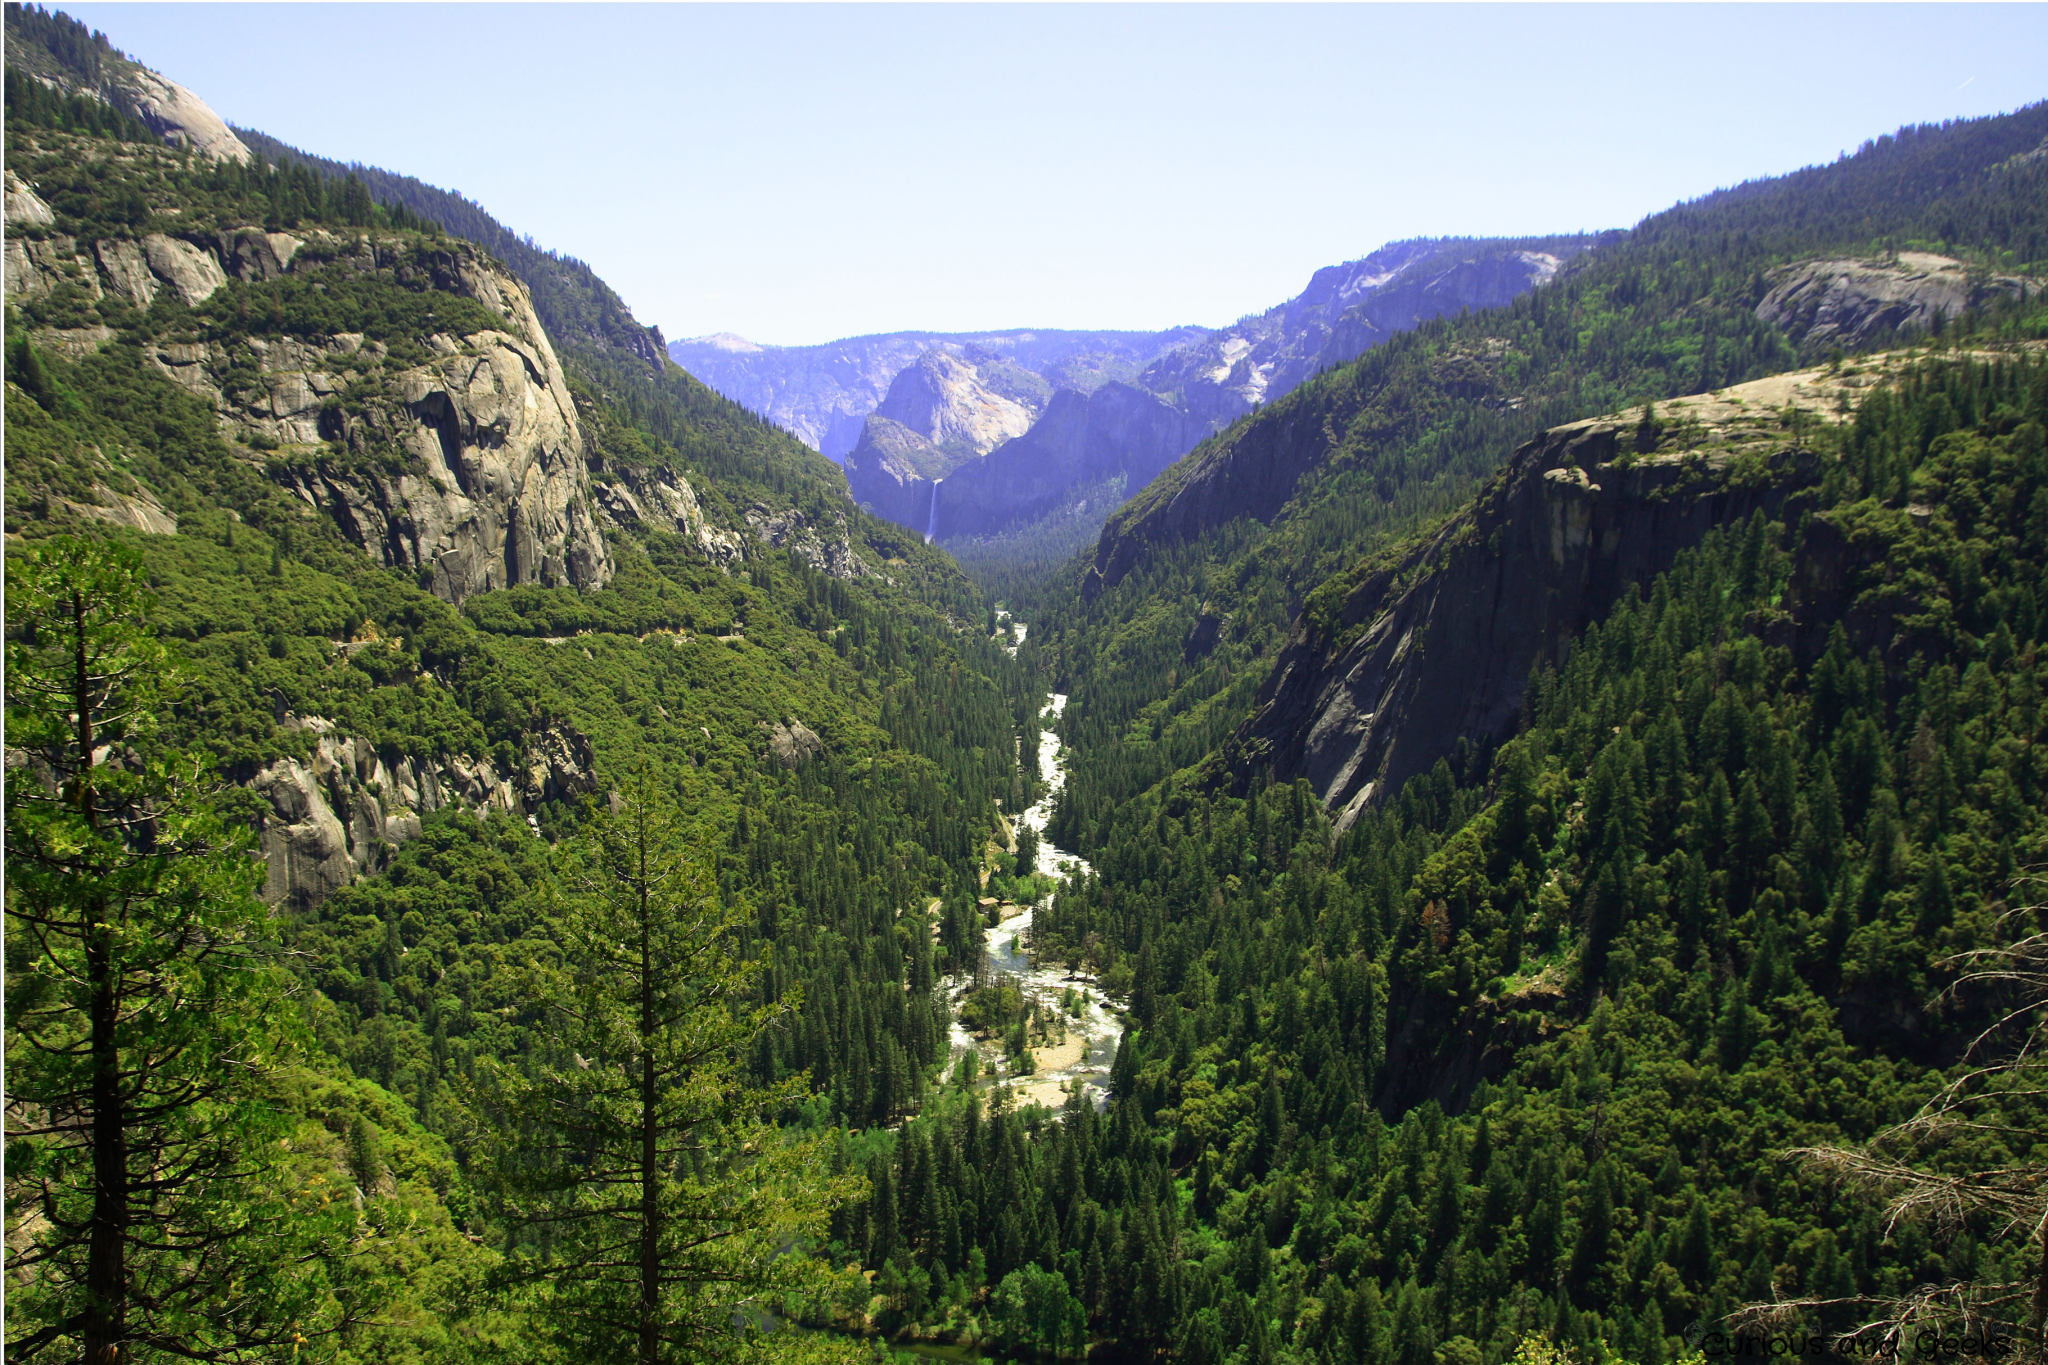 View of Yosemite Park